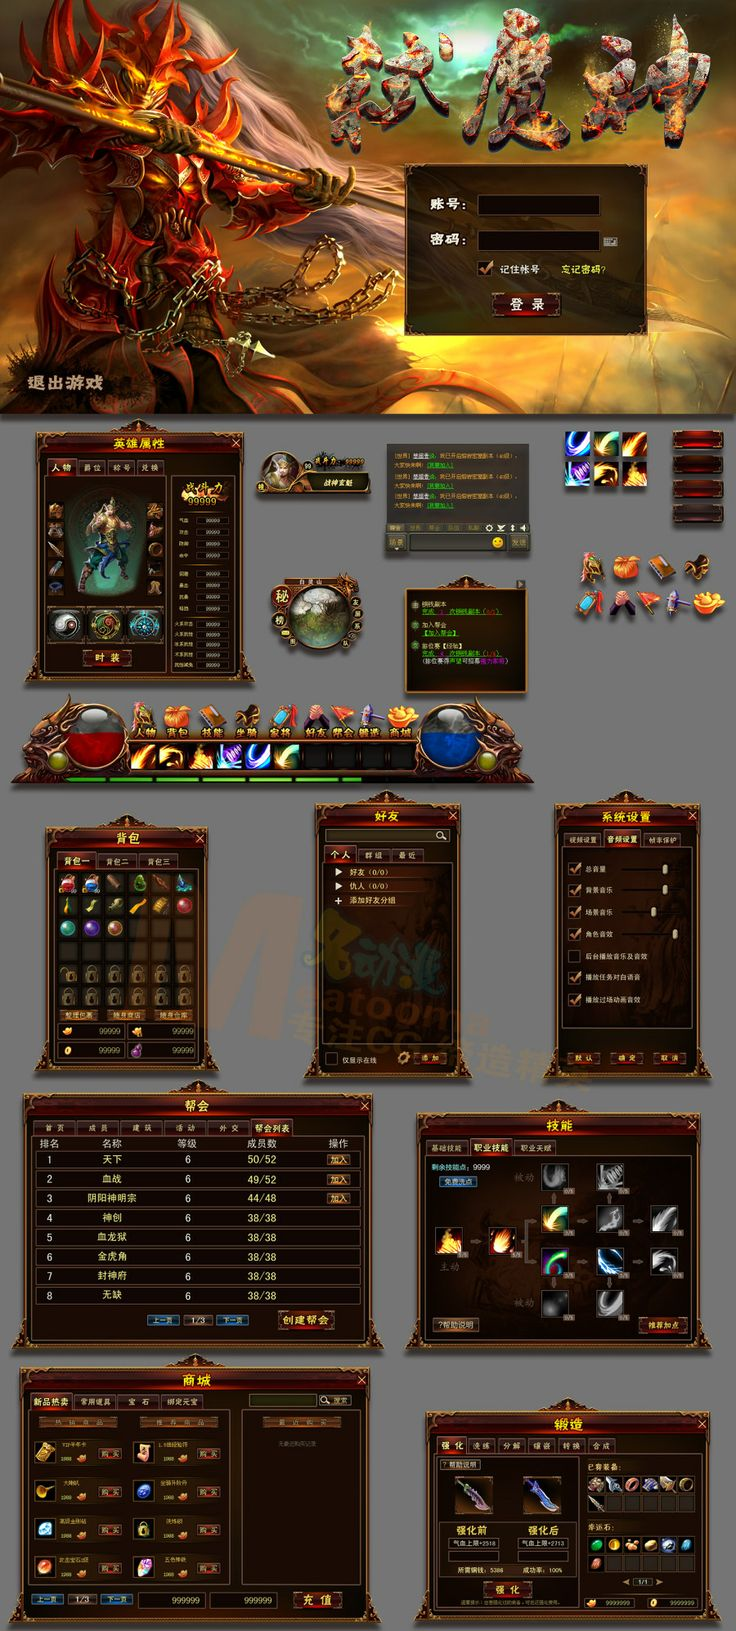 Red user interface gui ui | NOT OUR ART - Please click artwork for source | WRITING INSPIRATION for Dungeons and Dragons DND Pathfinder PFRPG Warhammer 40k Star Wars Shadowrun Call of Cthulhu and other d20 roleplaying fantasy science fiction scifi horror location equipment monster character game design | Create your own RPG Books w/ www.rpgbard.com